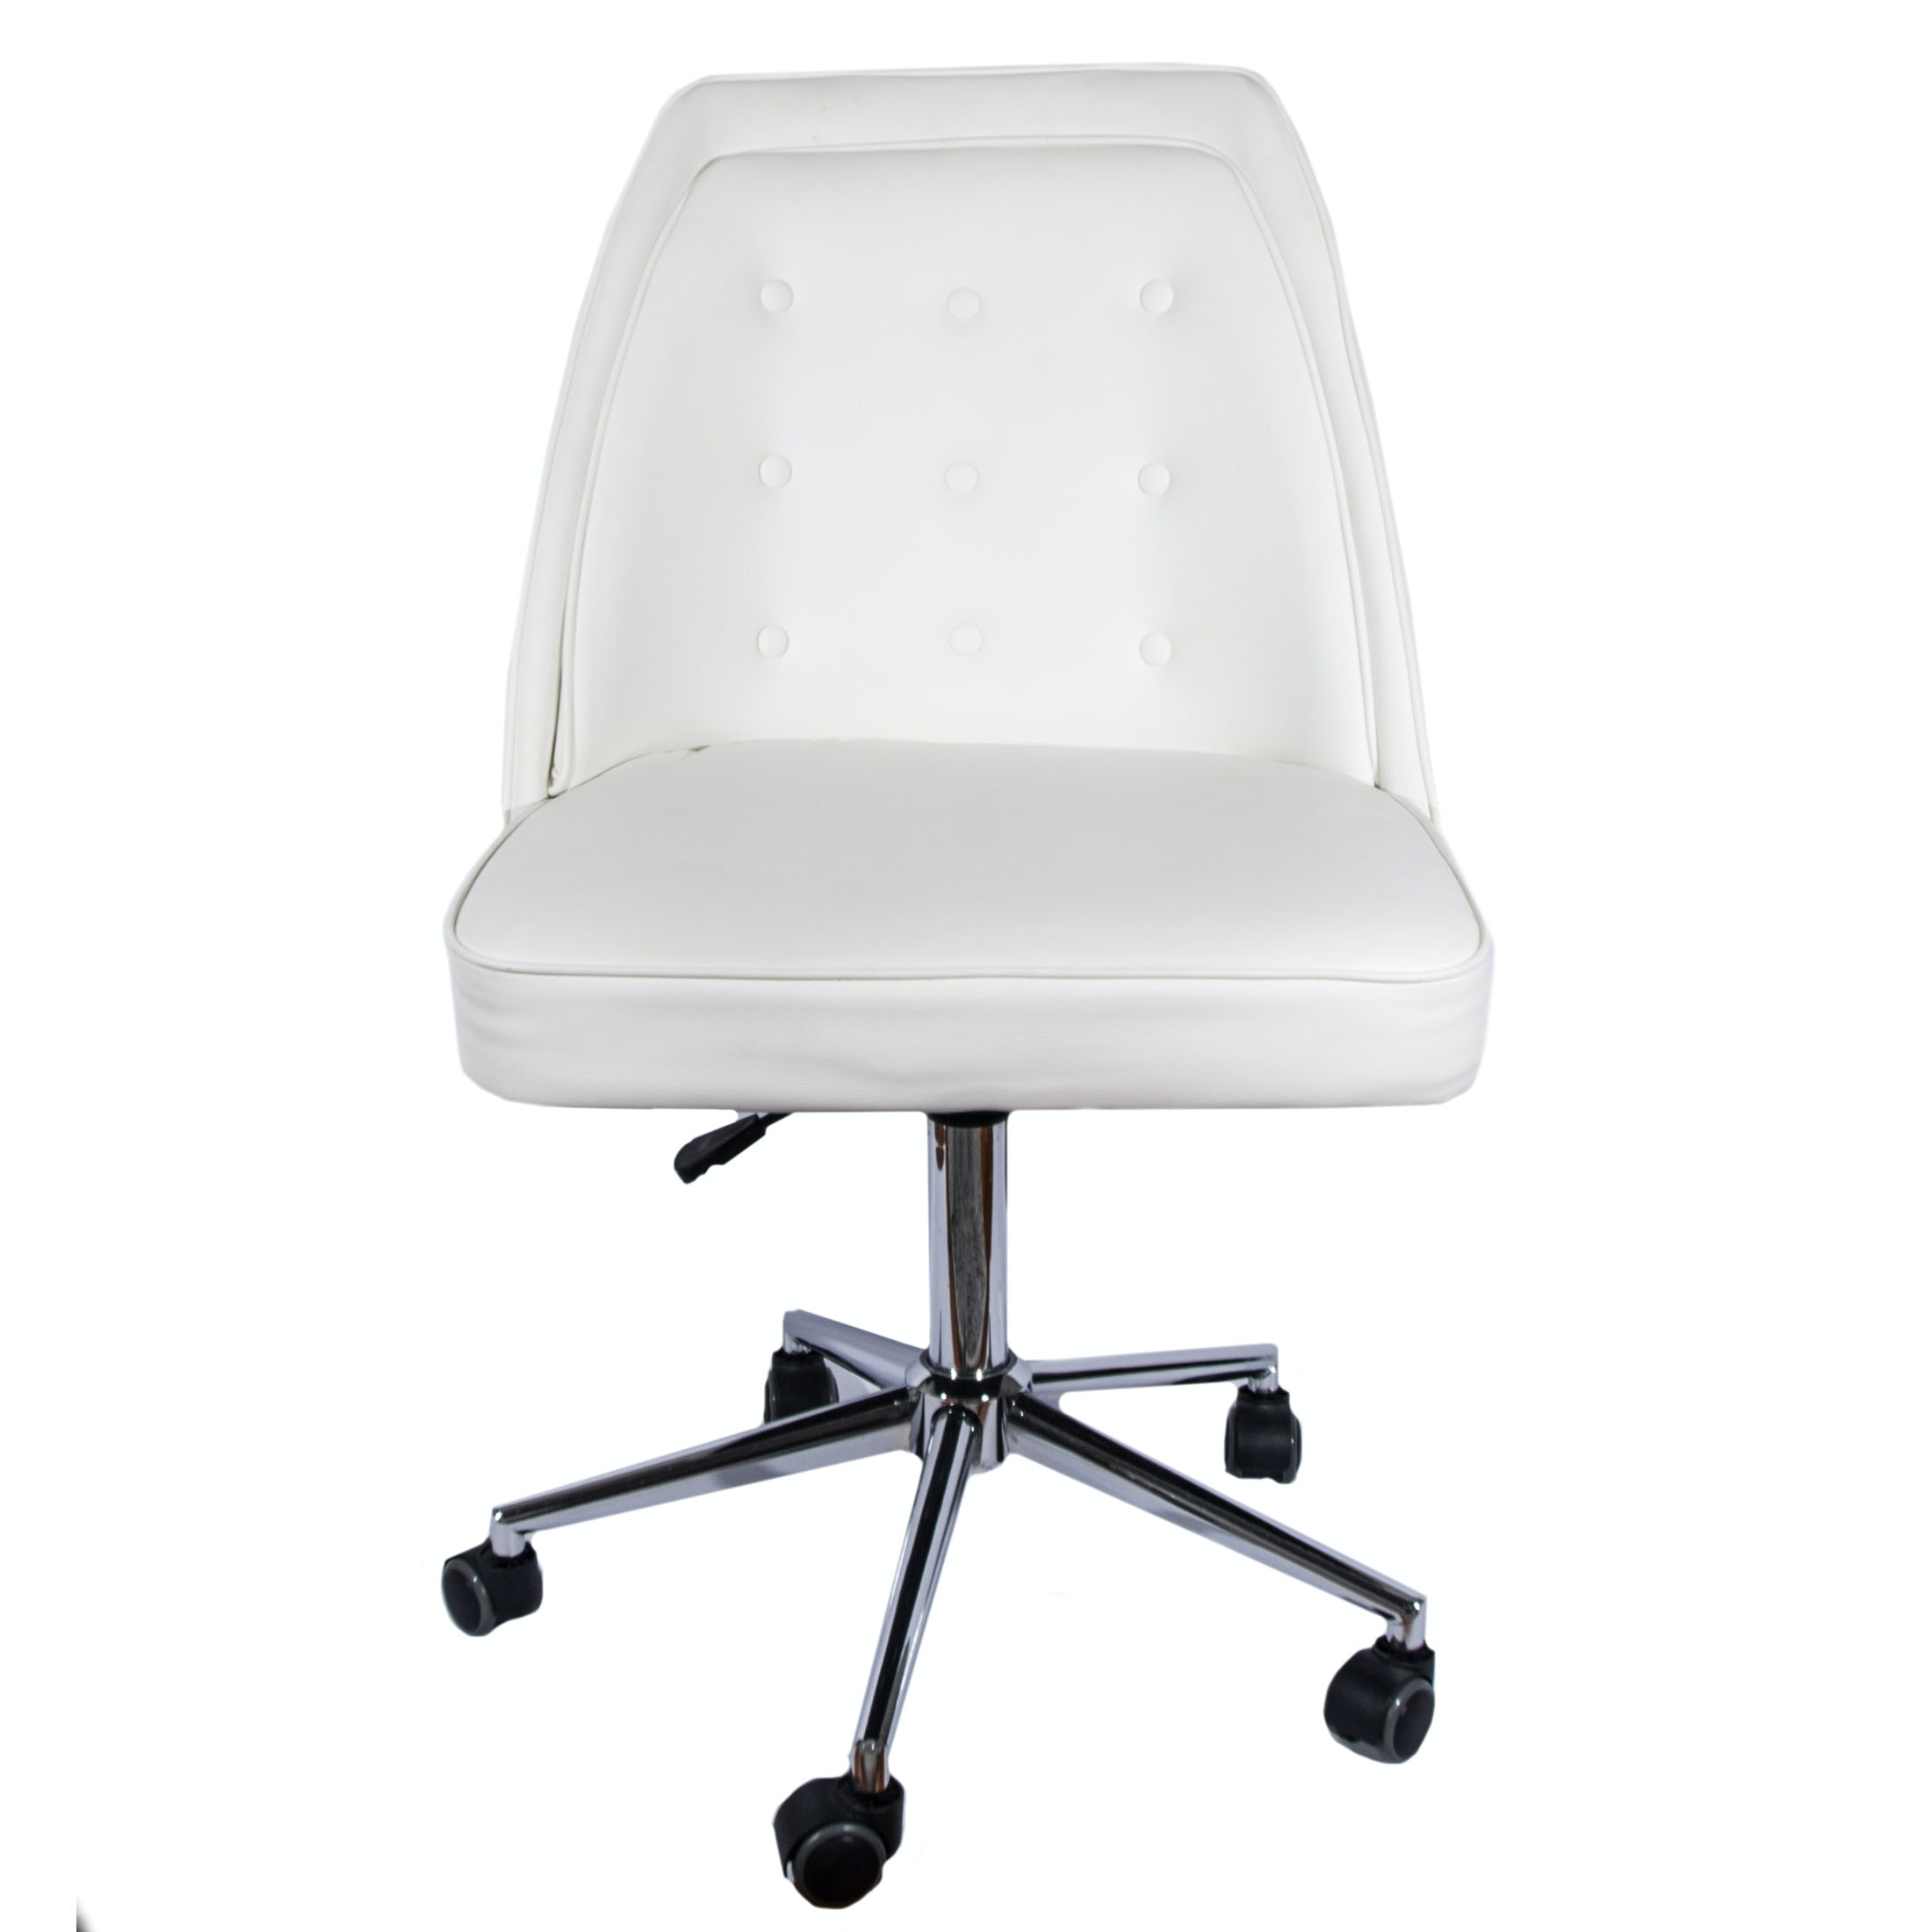 White Leather Rolling Desk Chair by Tainoki - rolling office chair